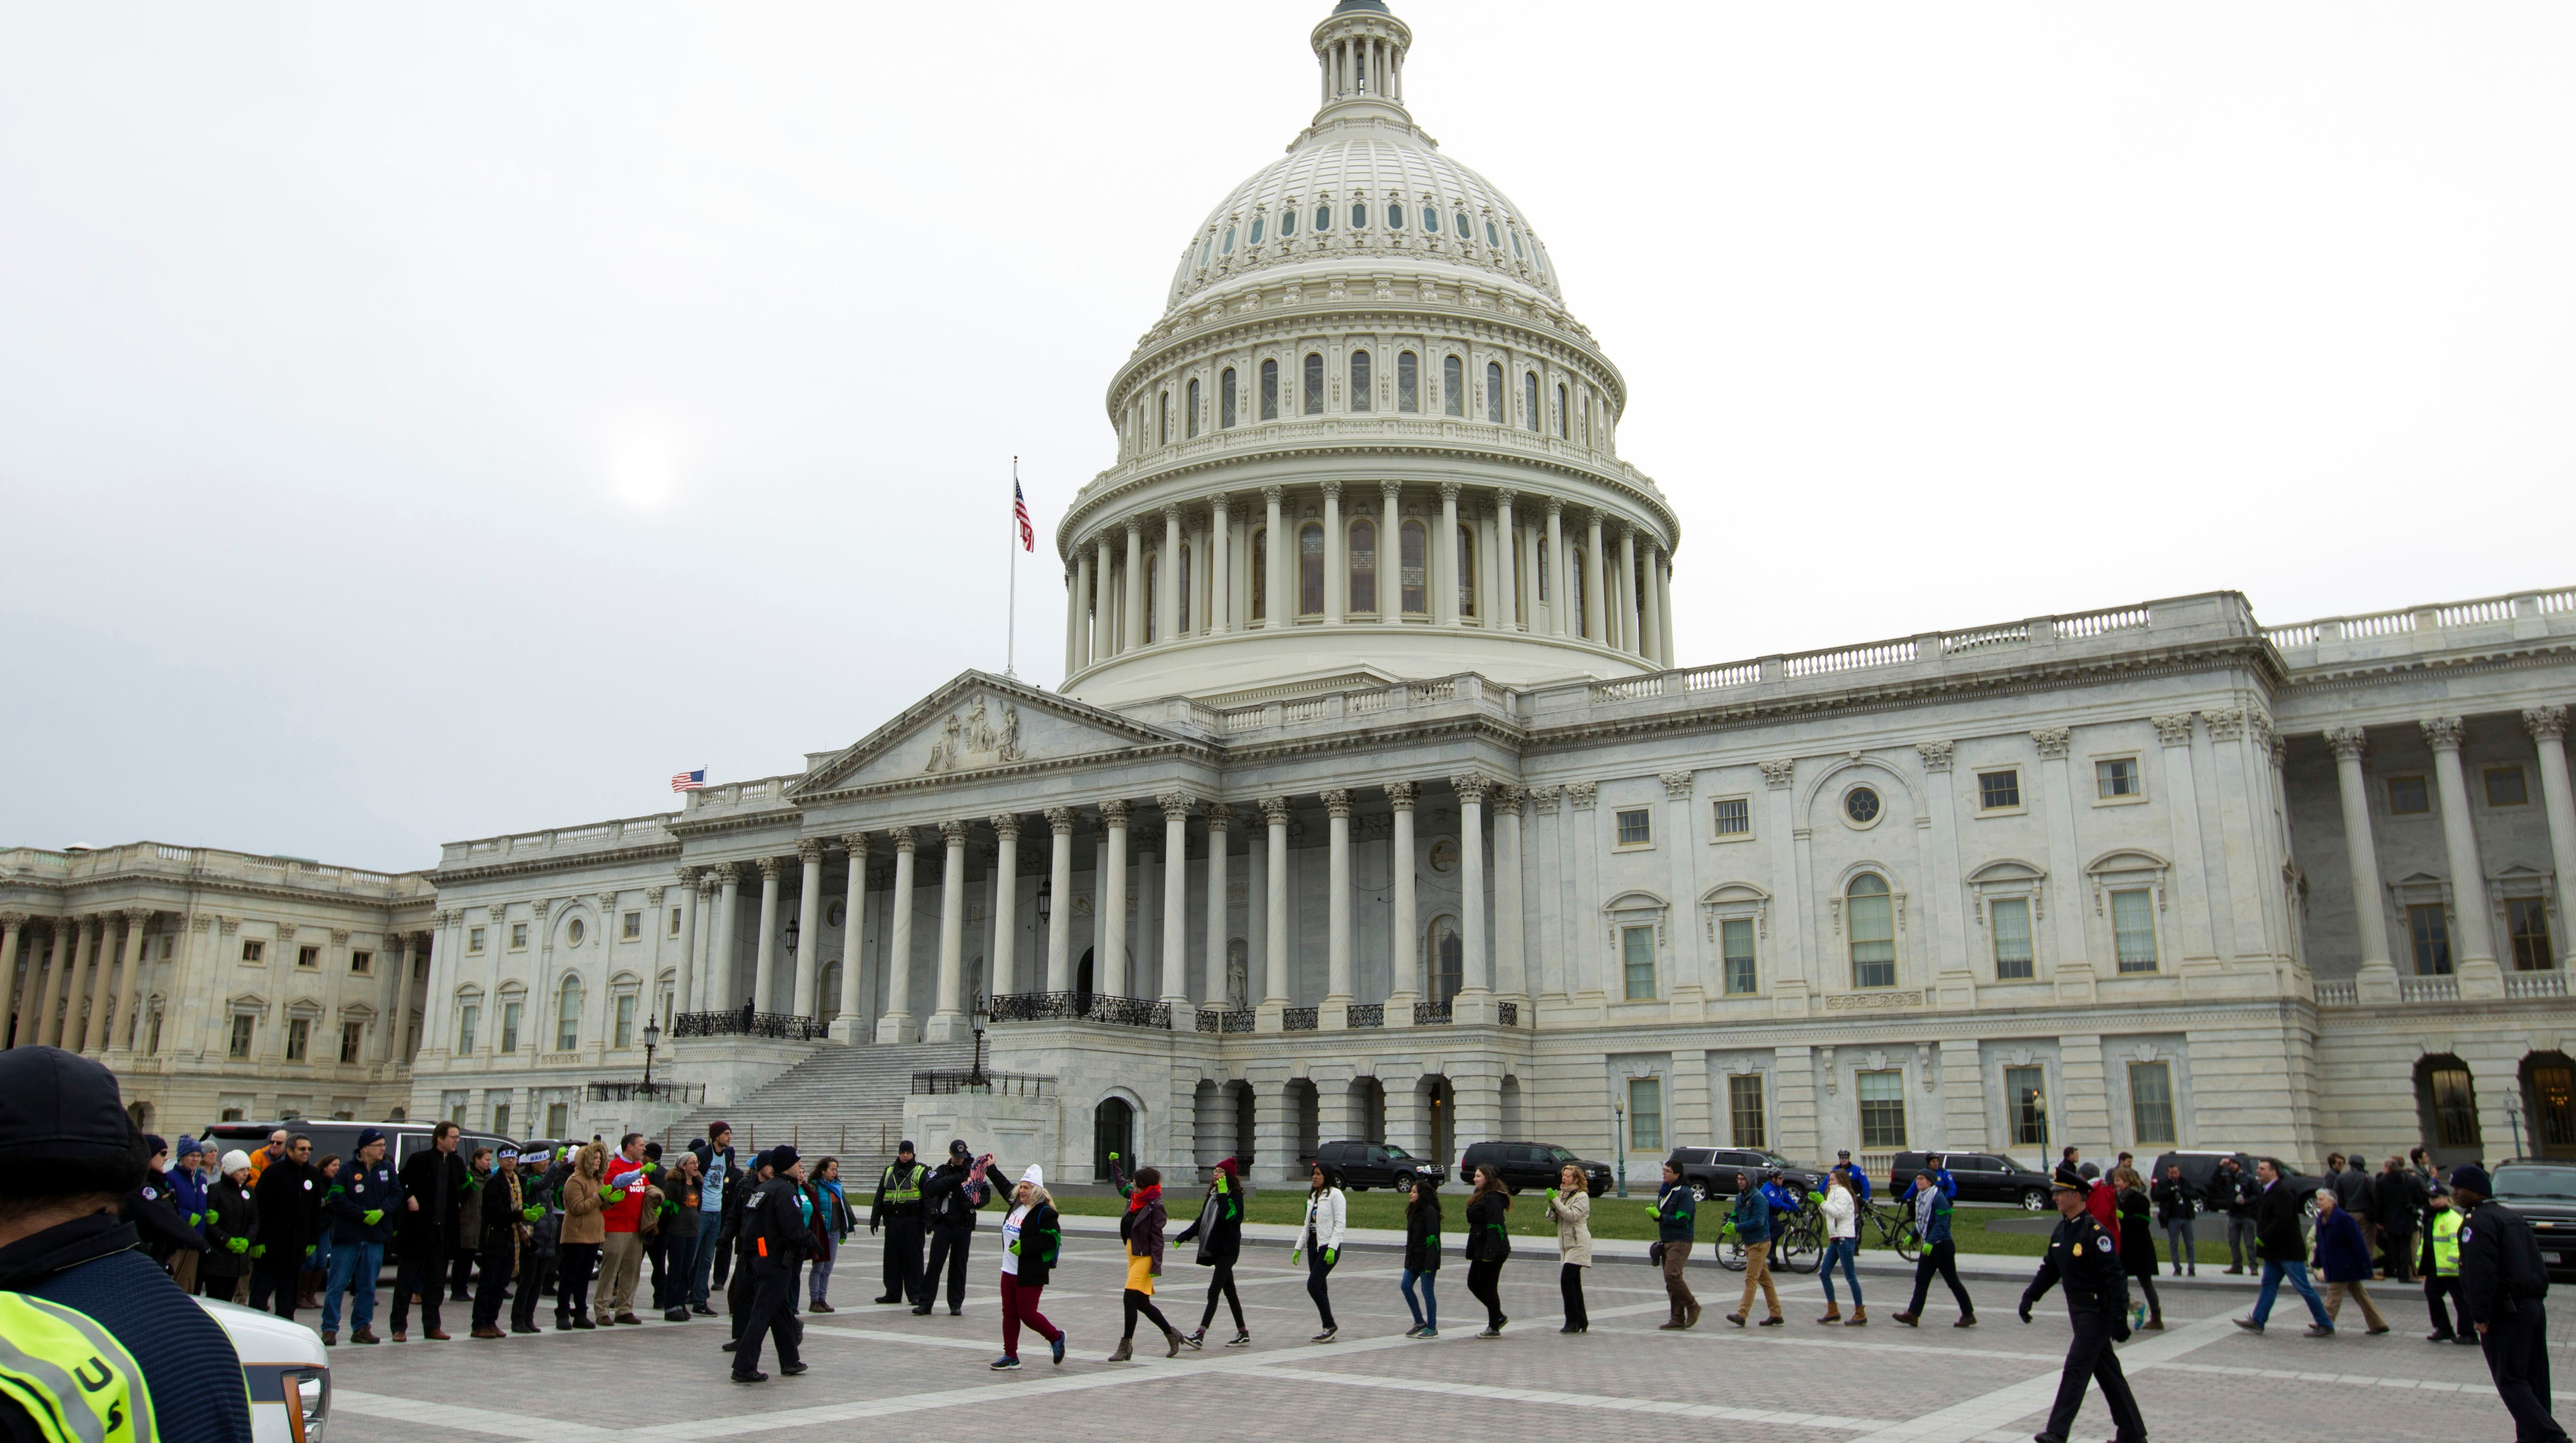 Demonstrators are arrested outside of the U.S. Capitol during an Immigration rally in support of the Deferred Action for Childhood Arrivals (DACA), and Temporary Protected Status (TPS), programs, at Capitol Hill in Washington, Wednesday, Dec. 6, 2017. ( AP Photo/Jose Luis Magana)